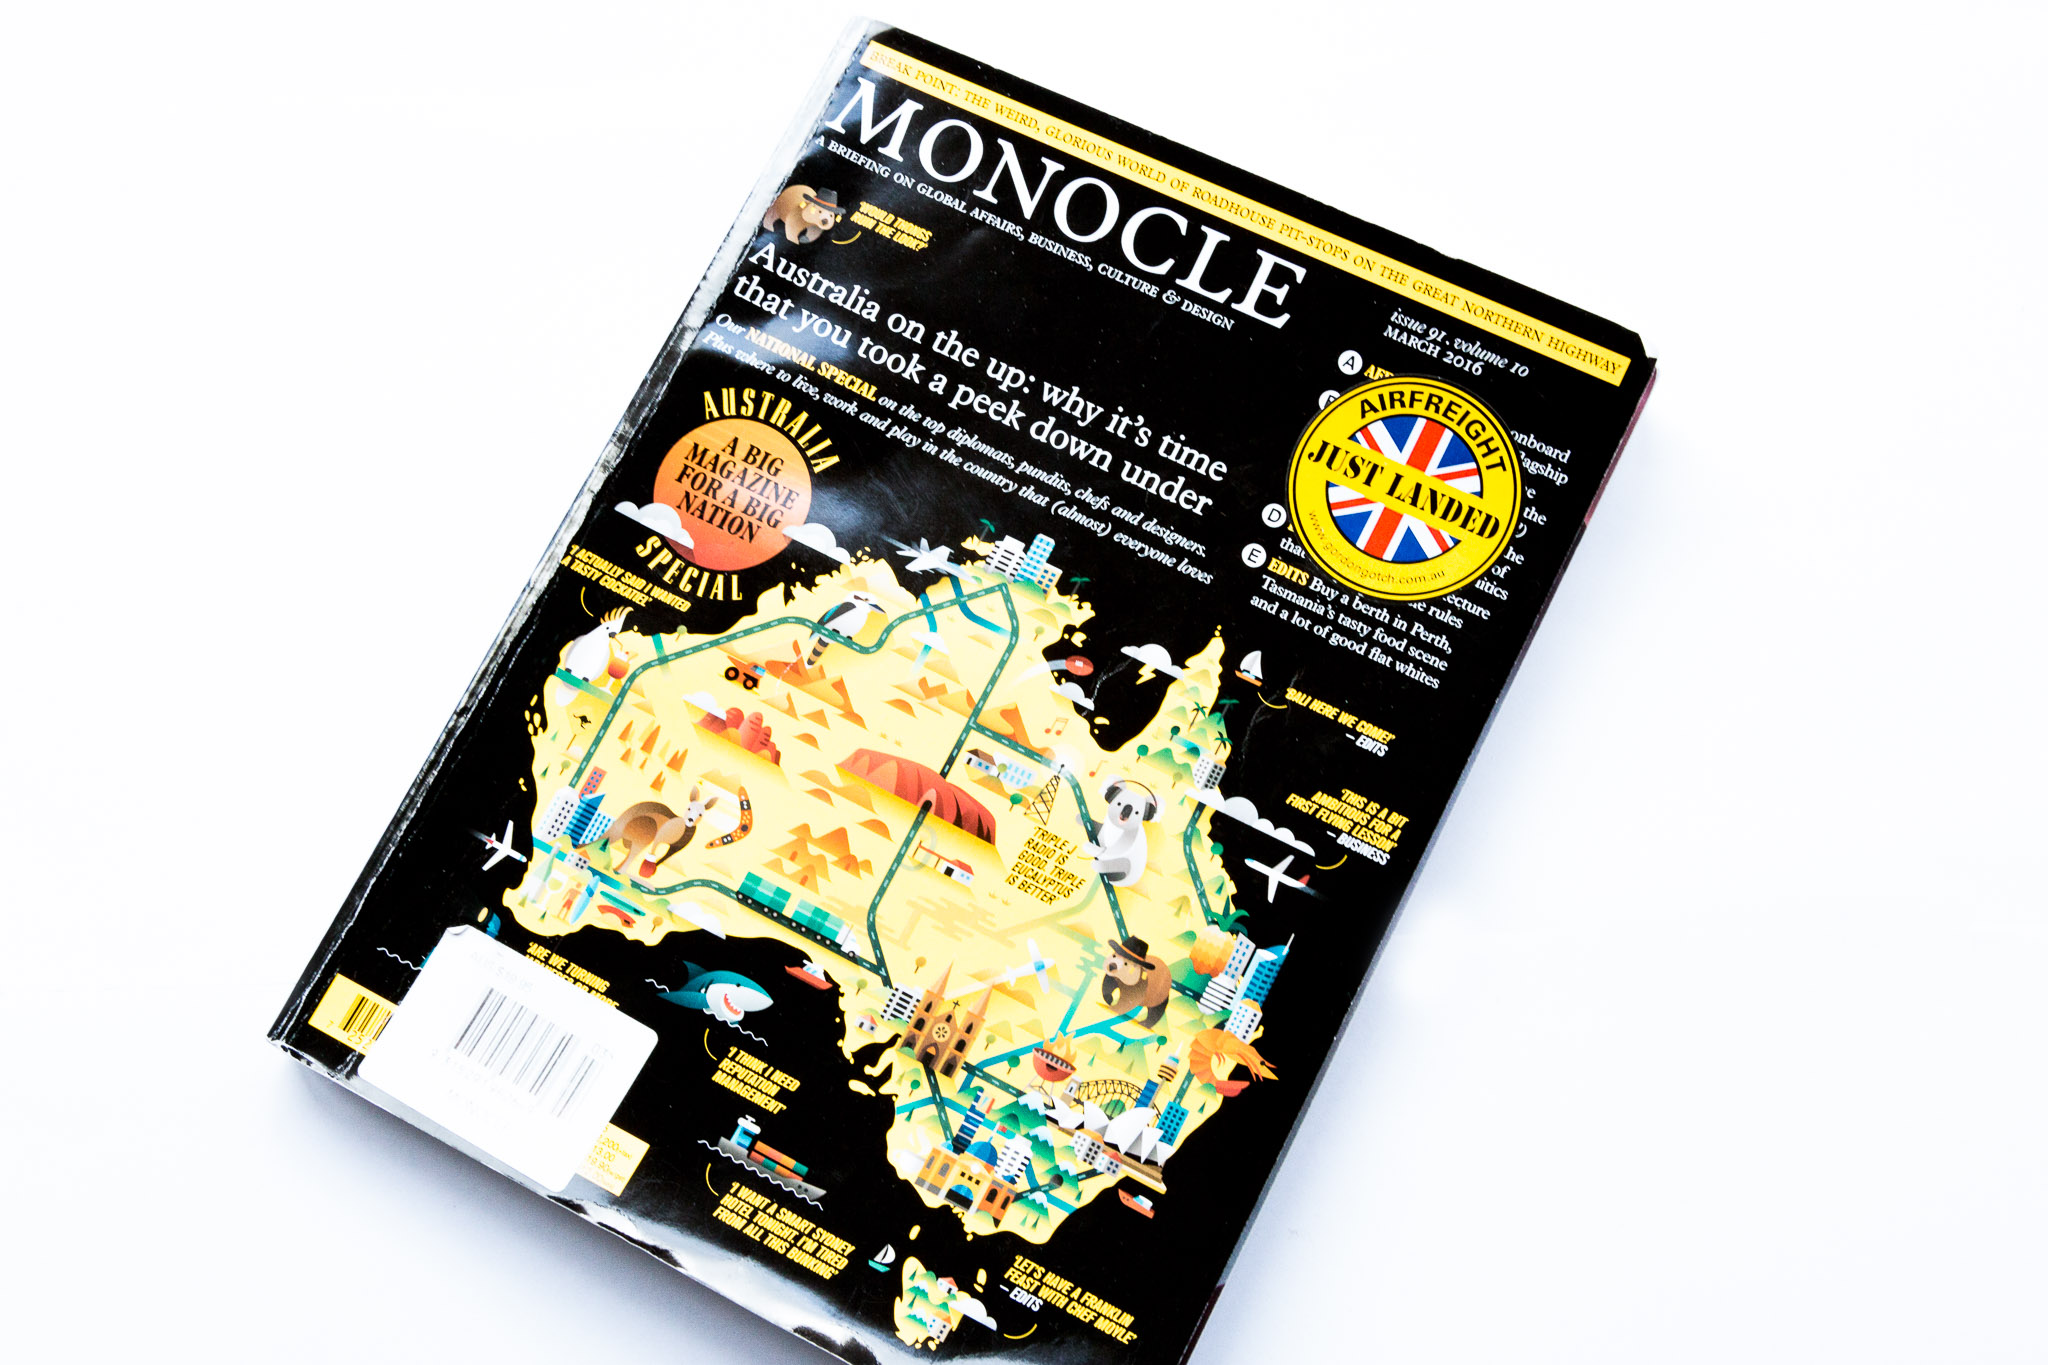 Monocle features-3